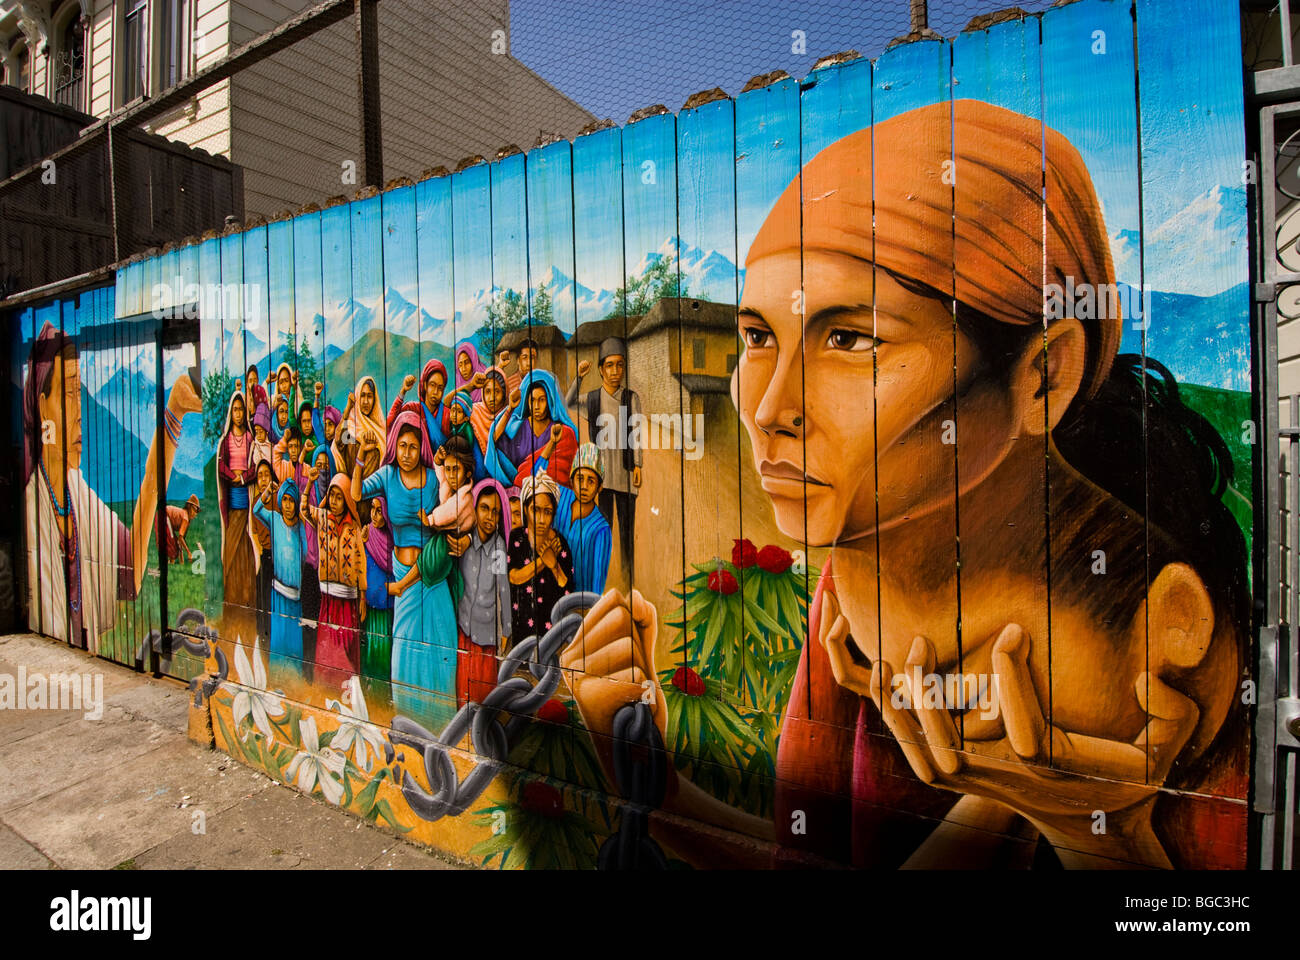 California: San Francisco. Mission district murals, Hispanic themes. Photo copyright Lee Foster. Photo # 26-casanf78625. - Stock Image